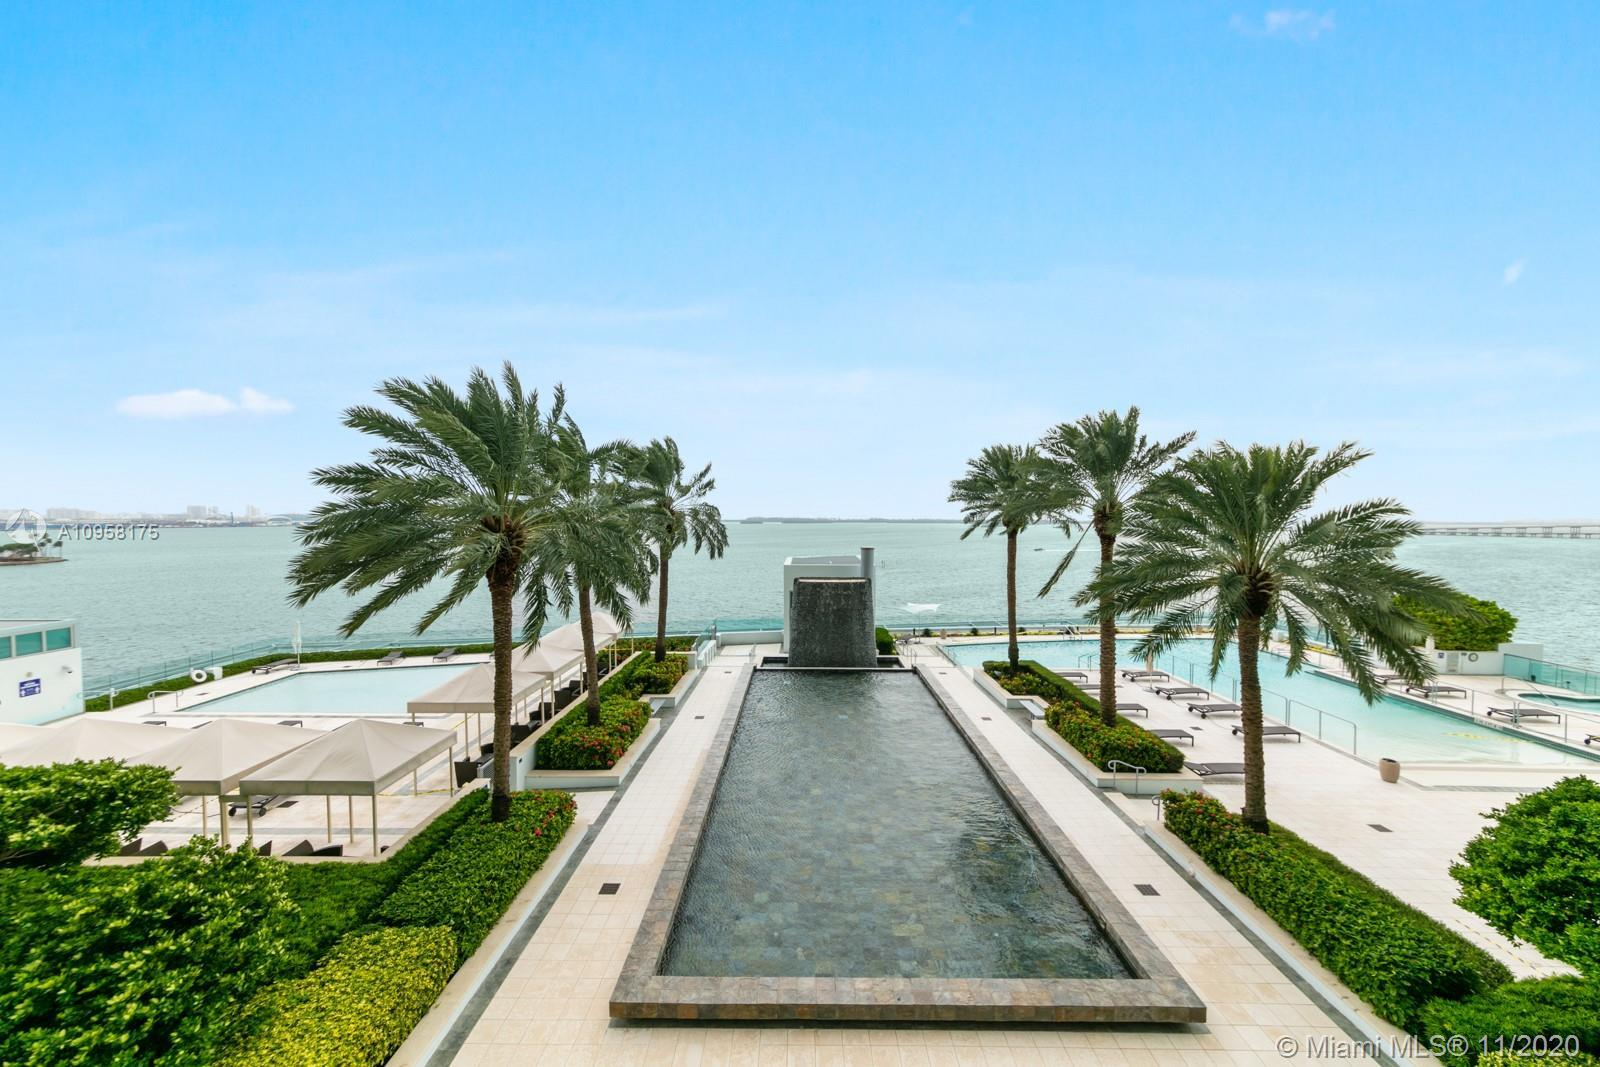 Gorgeous 1 bedroom with views of Biscayne Bay and beyond. Located in one of the best walkable areas